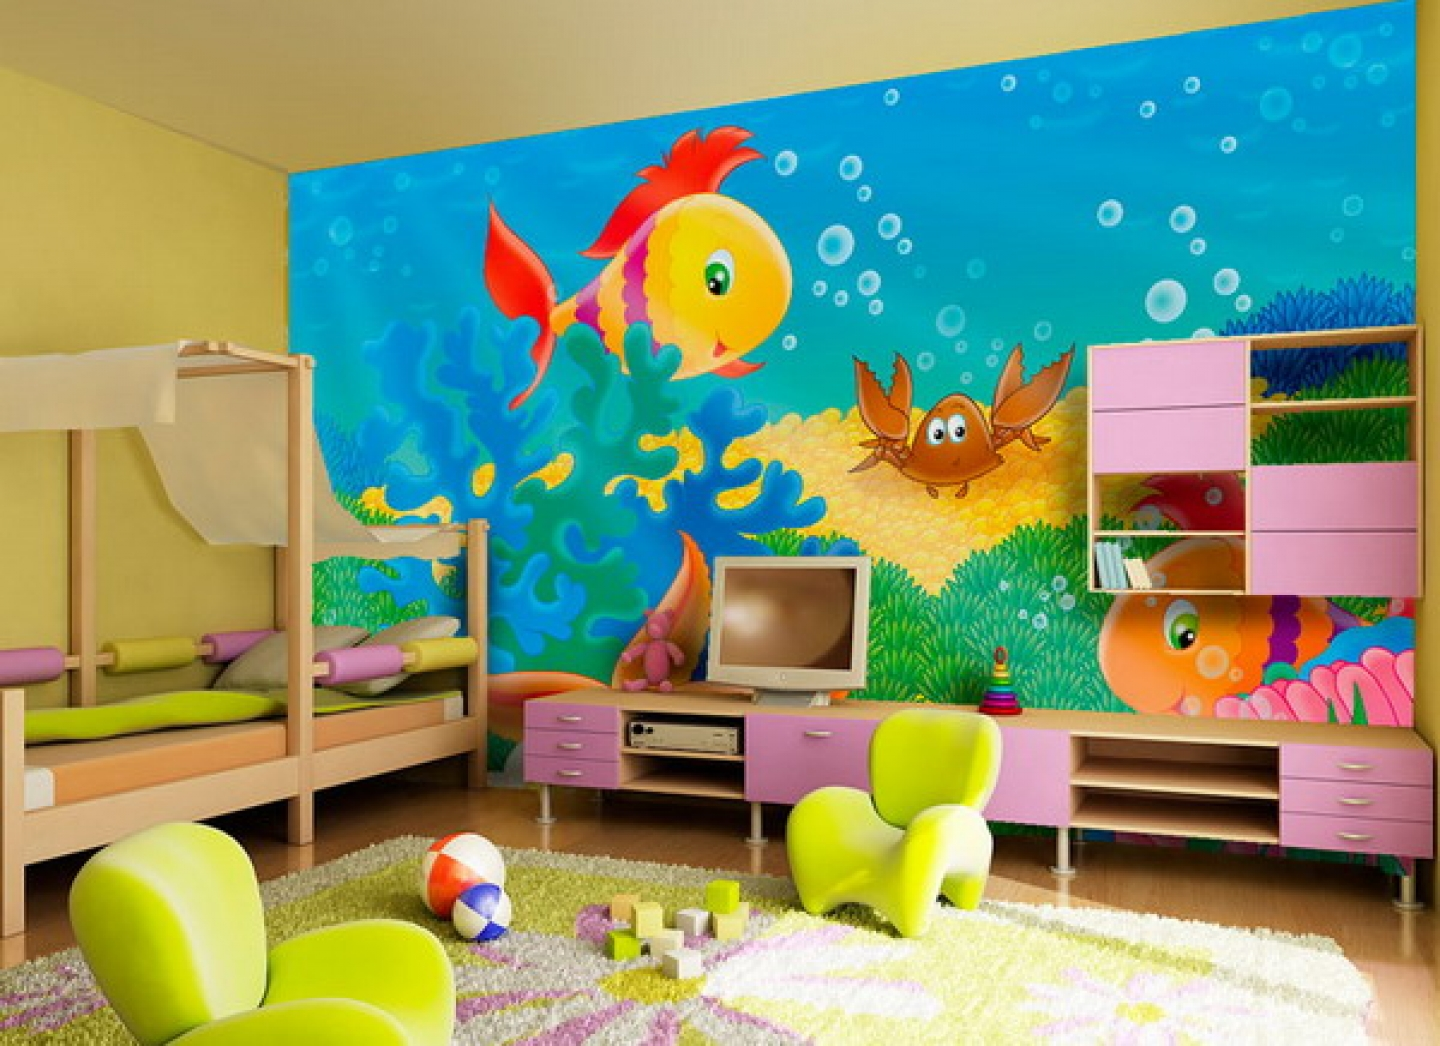 10 decorating ideas for kids rooms hgtv. kids room bedroom ideas